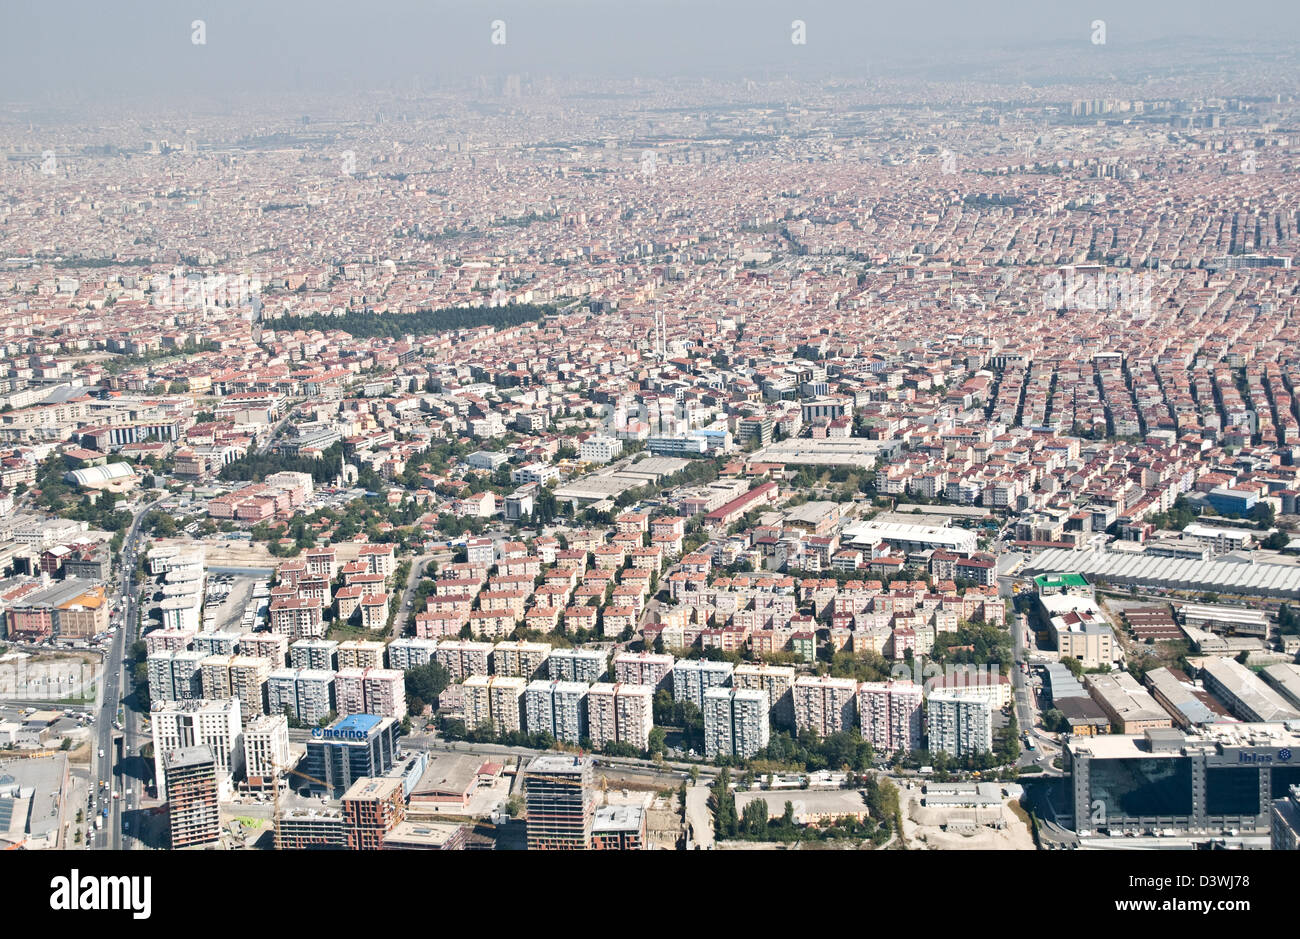 An aerial view of the sprawling western suburbs of the city of Istanbul, Turkey. - Stock Image